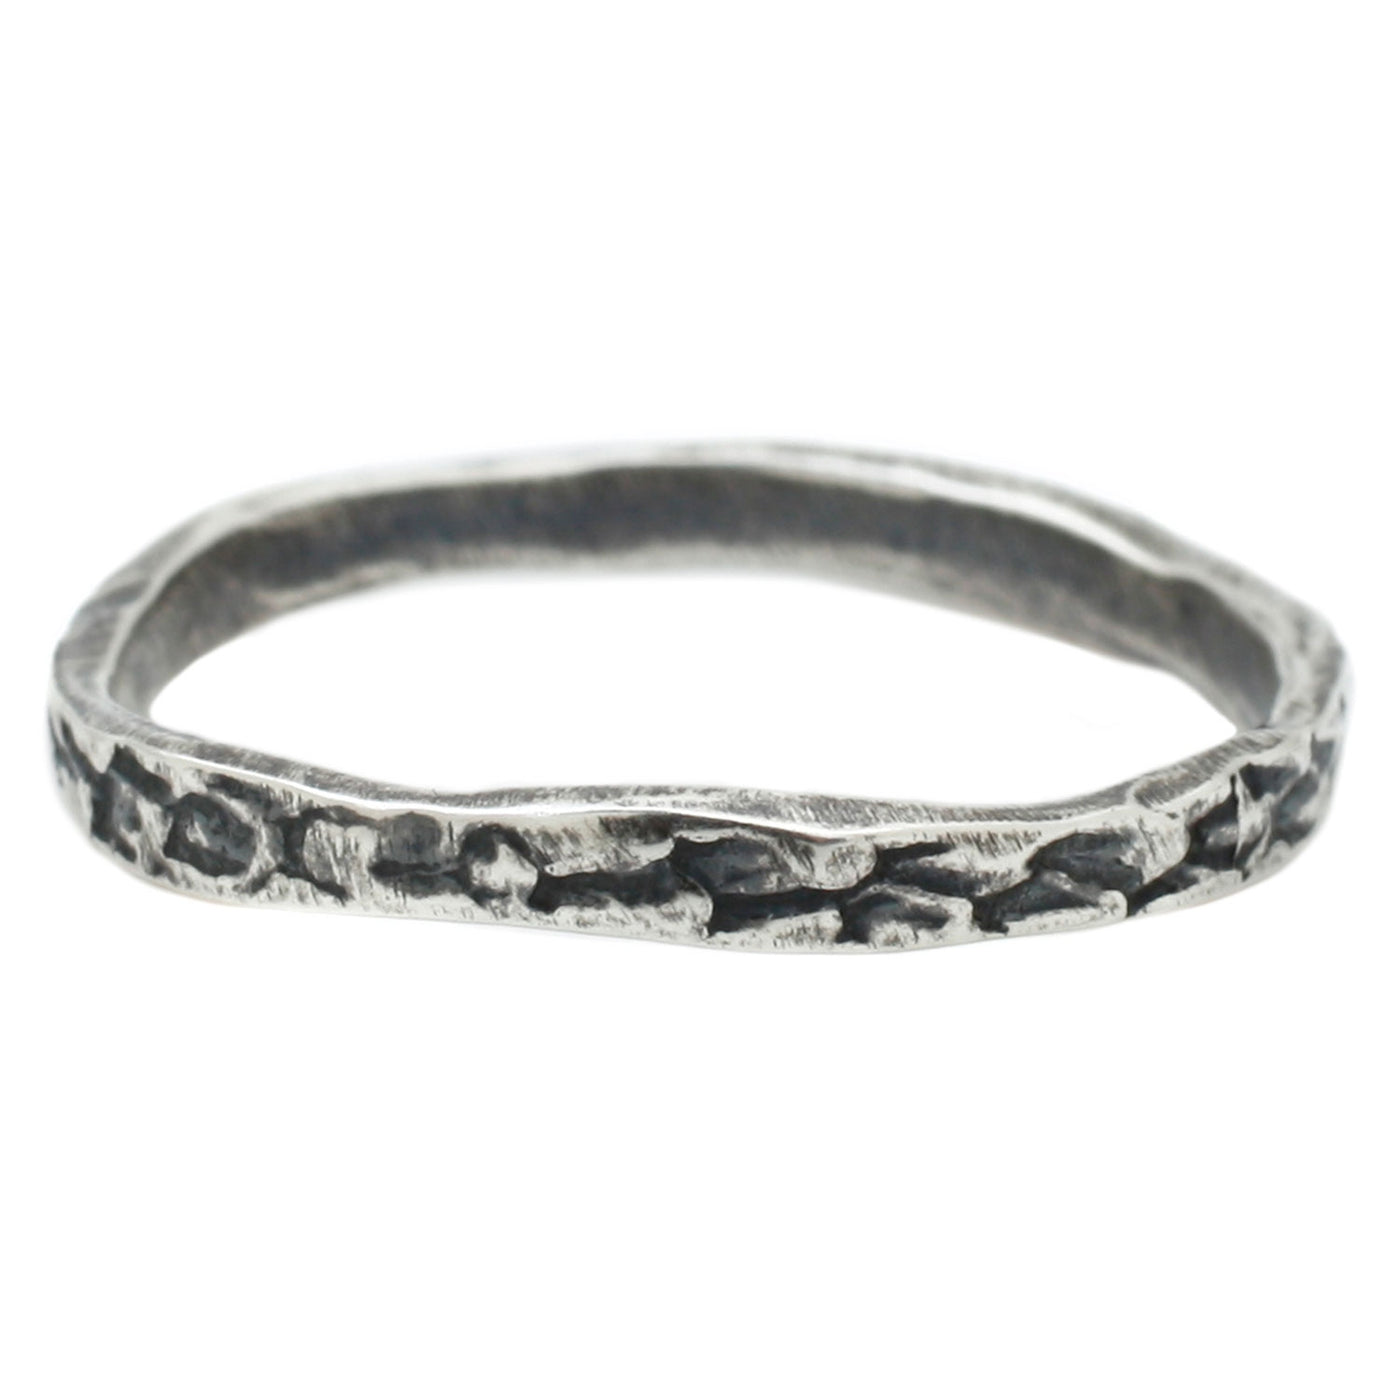 Silver Snakeskin Band